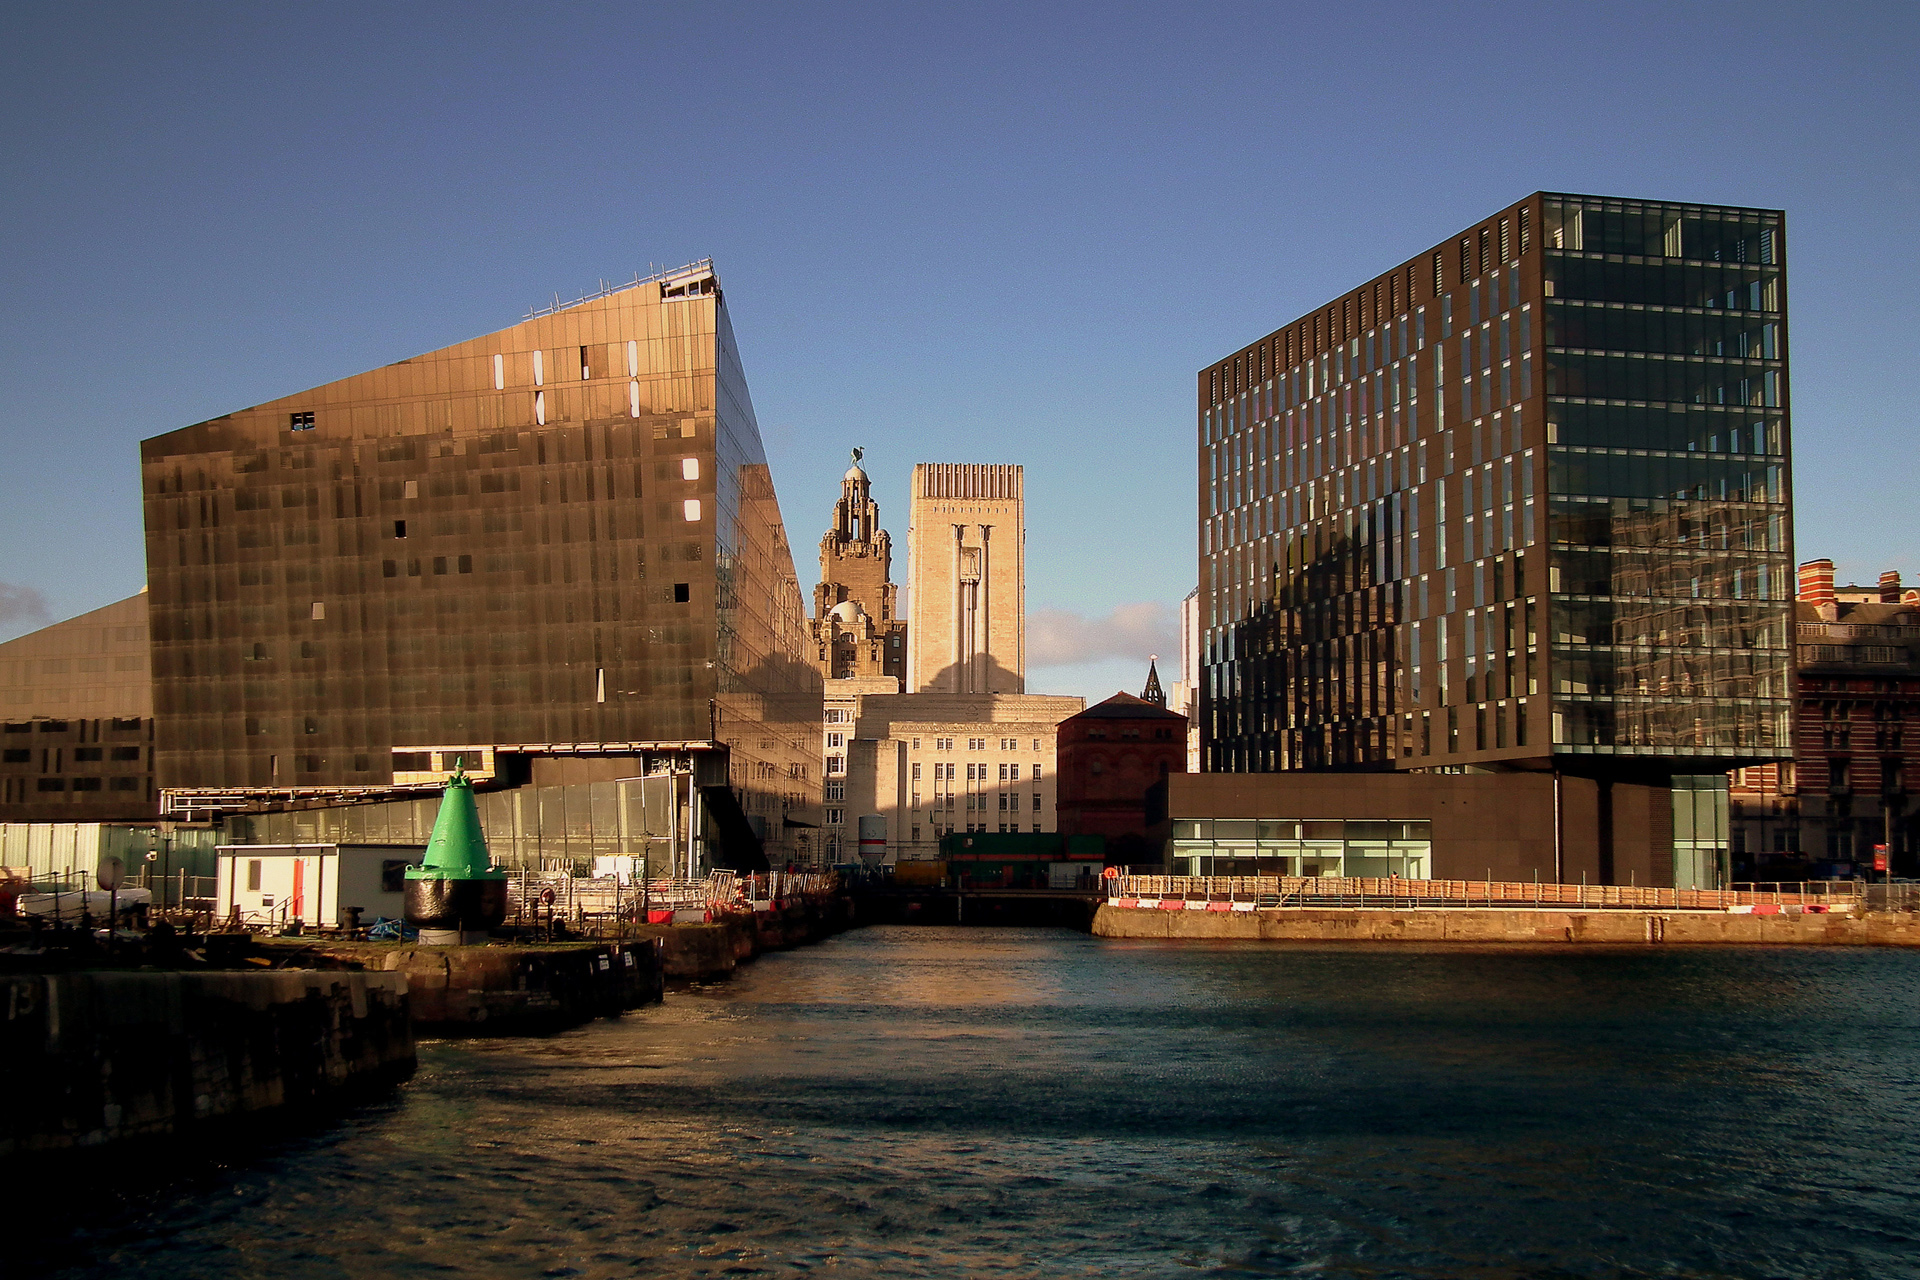 Mann Island, Albert Dock, Liverpool have been Supplied and Installed with Acoustic Flooring